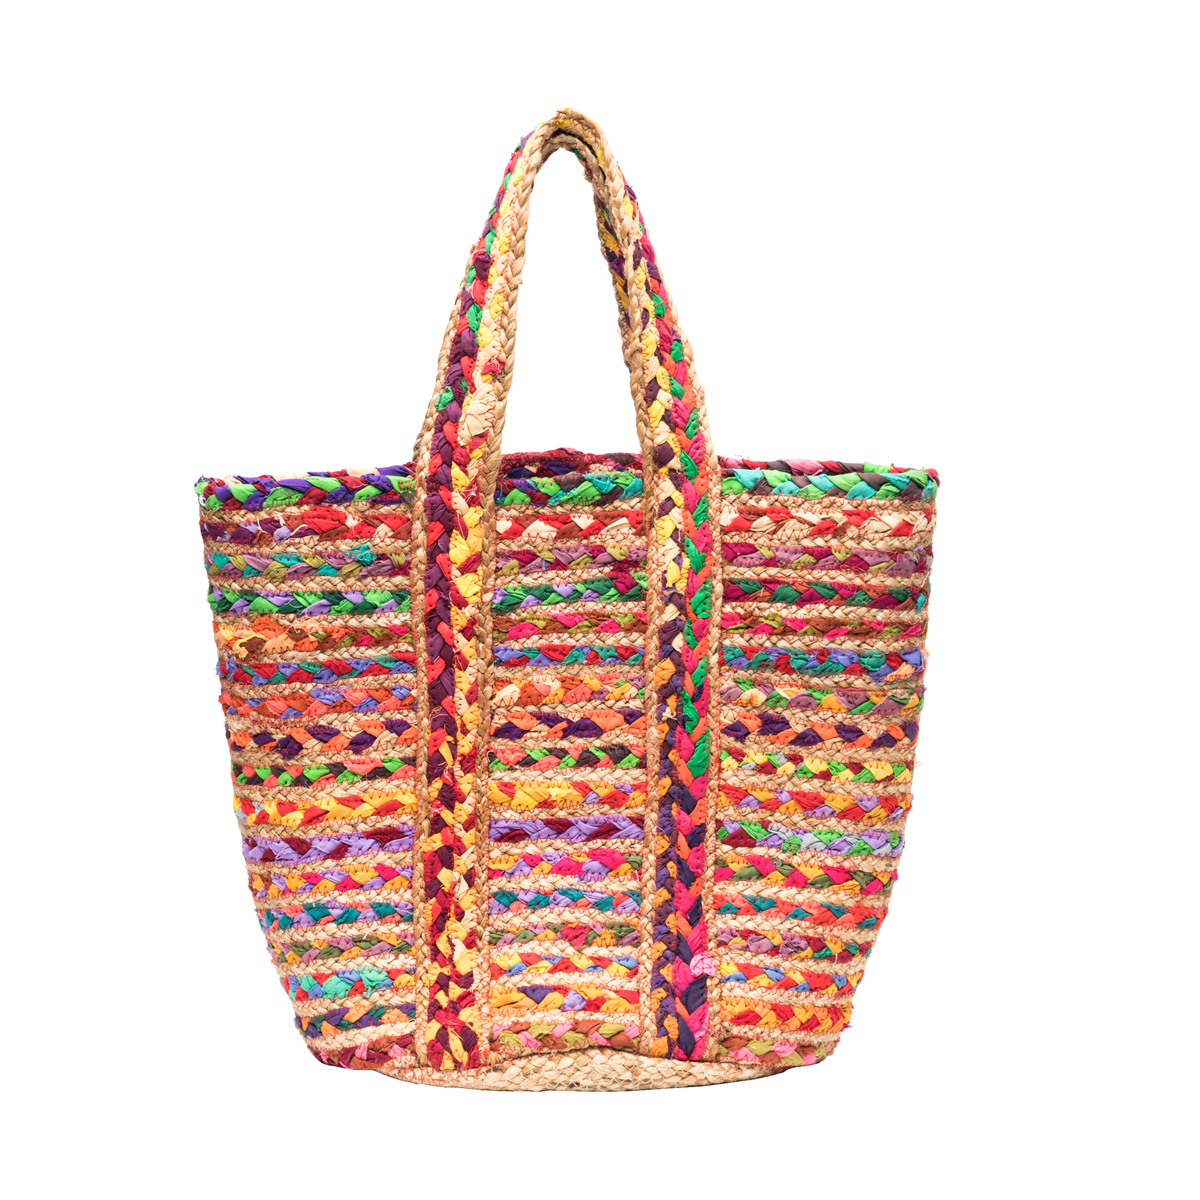 BLB105_Chindi_Blend_Basket_Large_1200.jpg